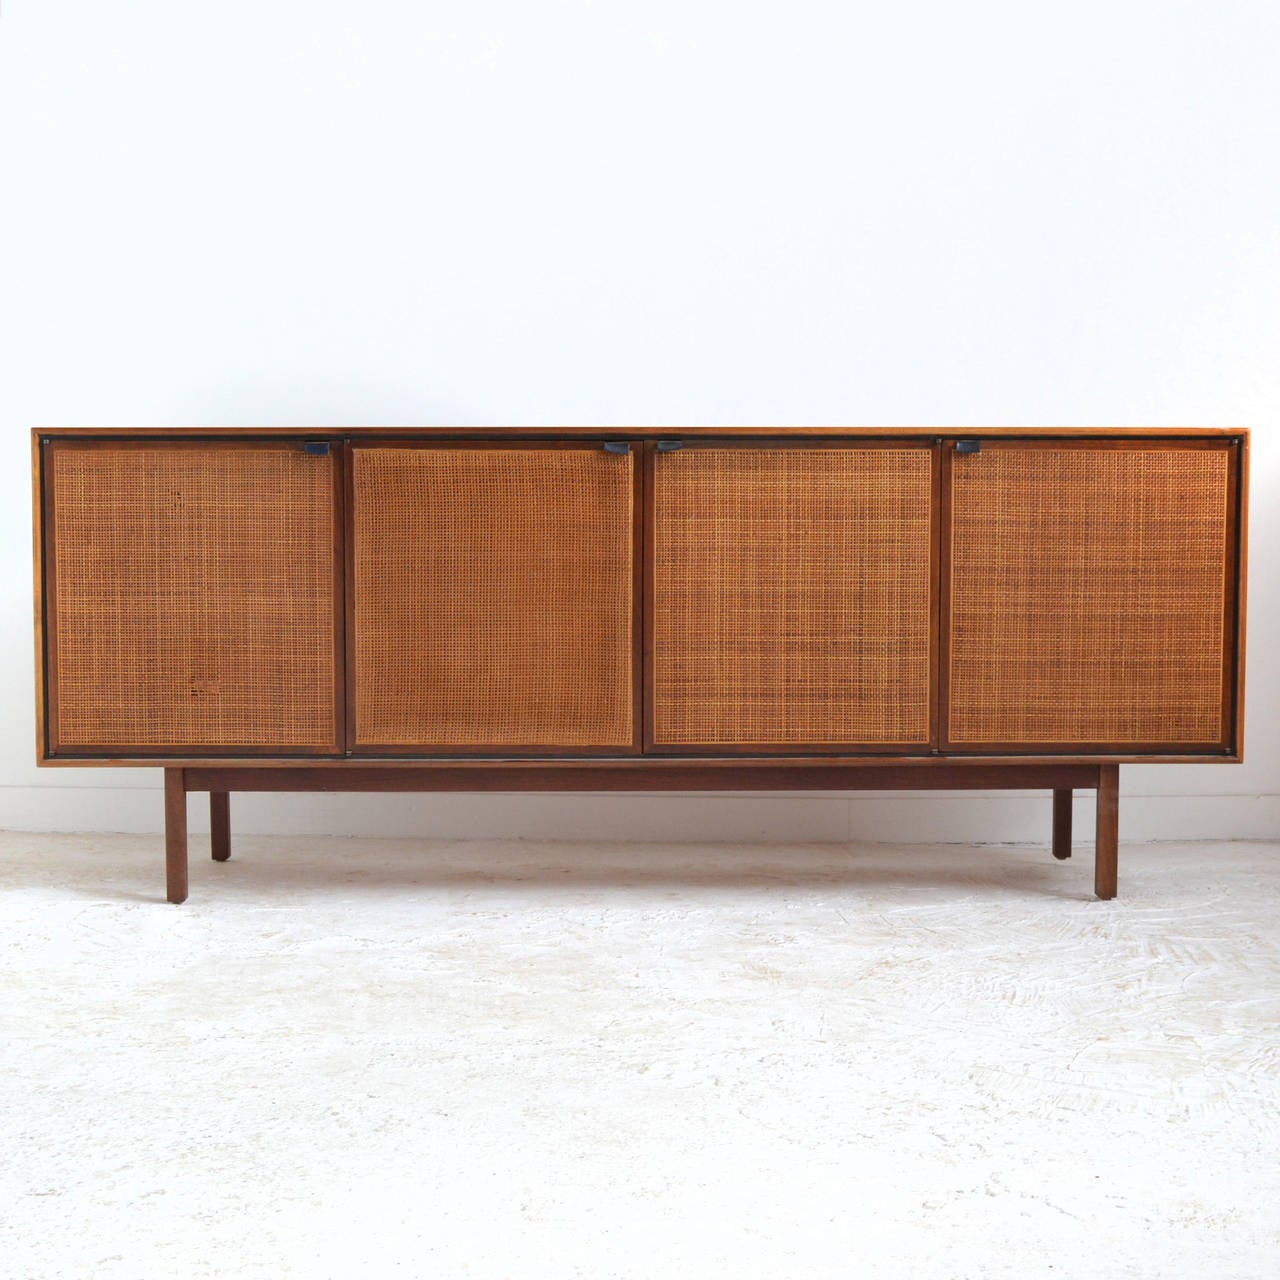 Teak Cane Front Credenza And Cabinet By Founders At 1stdibs